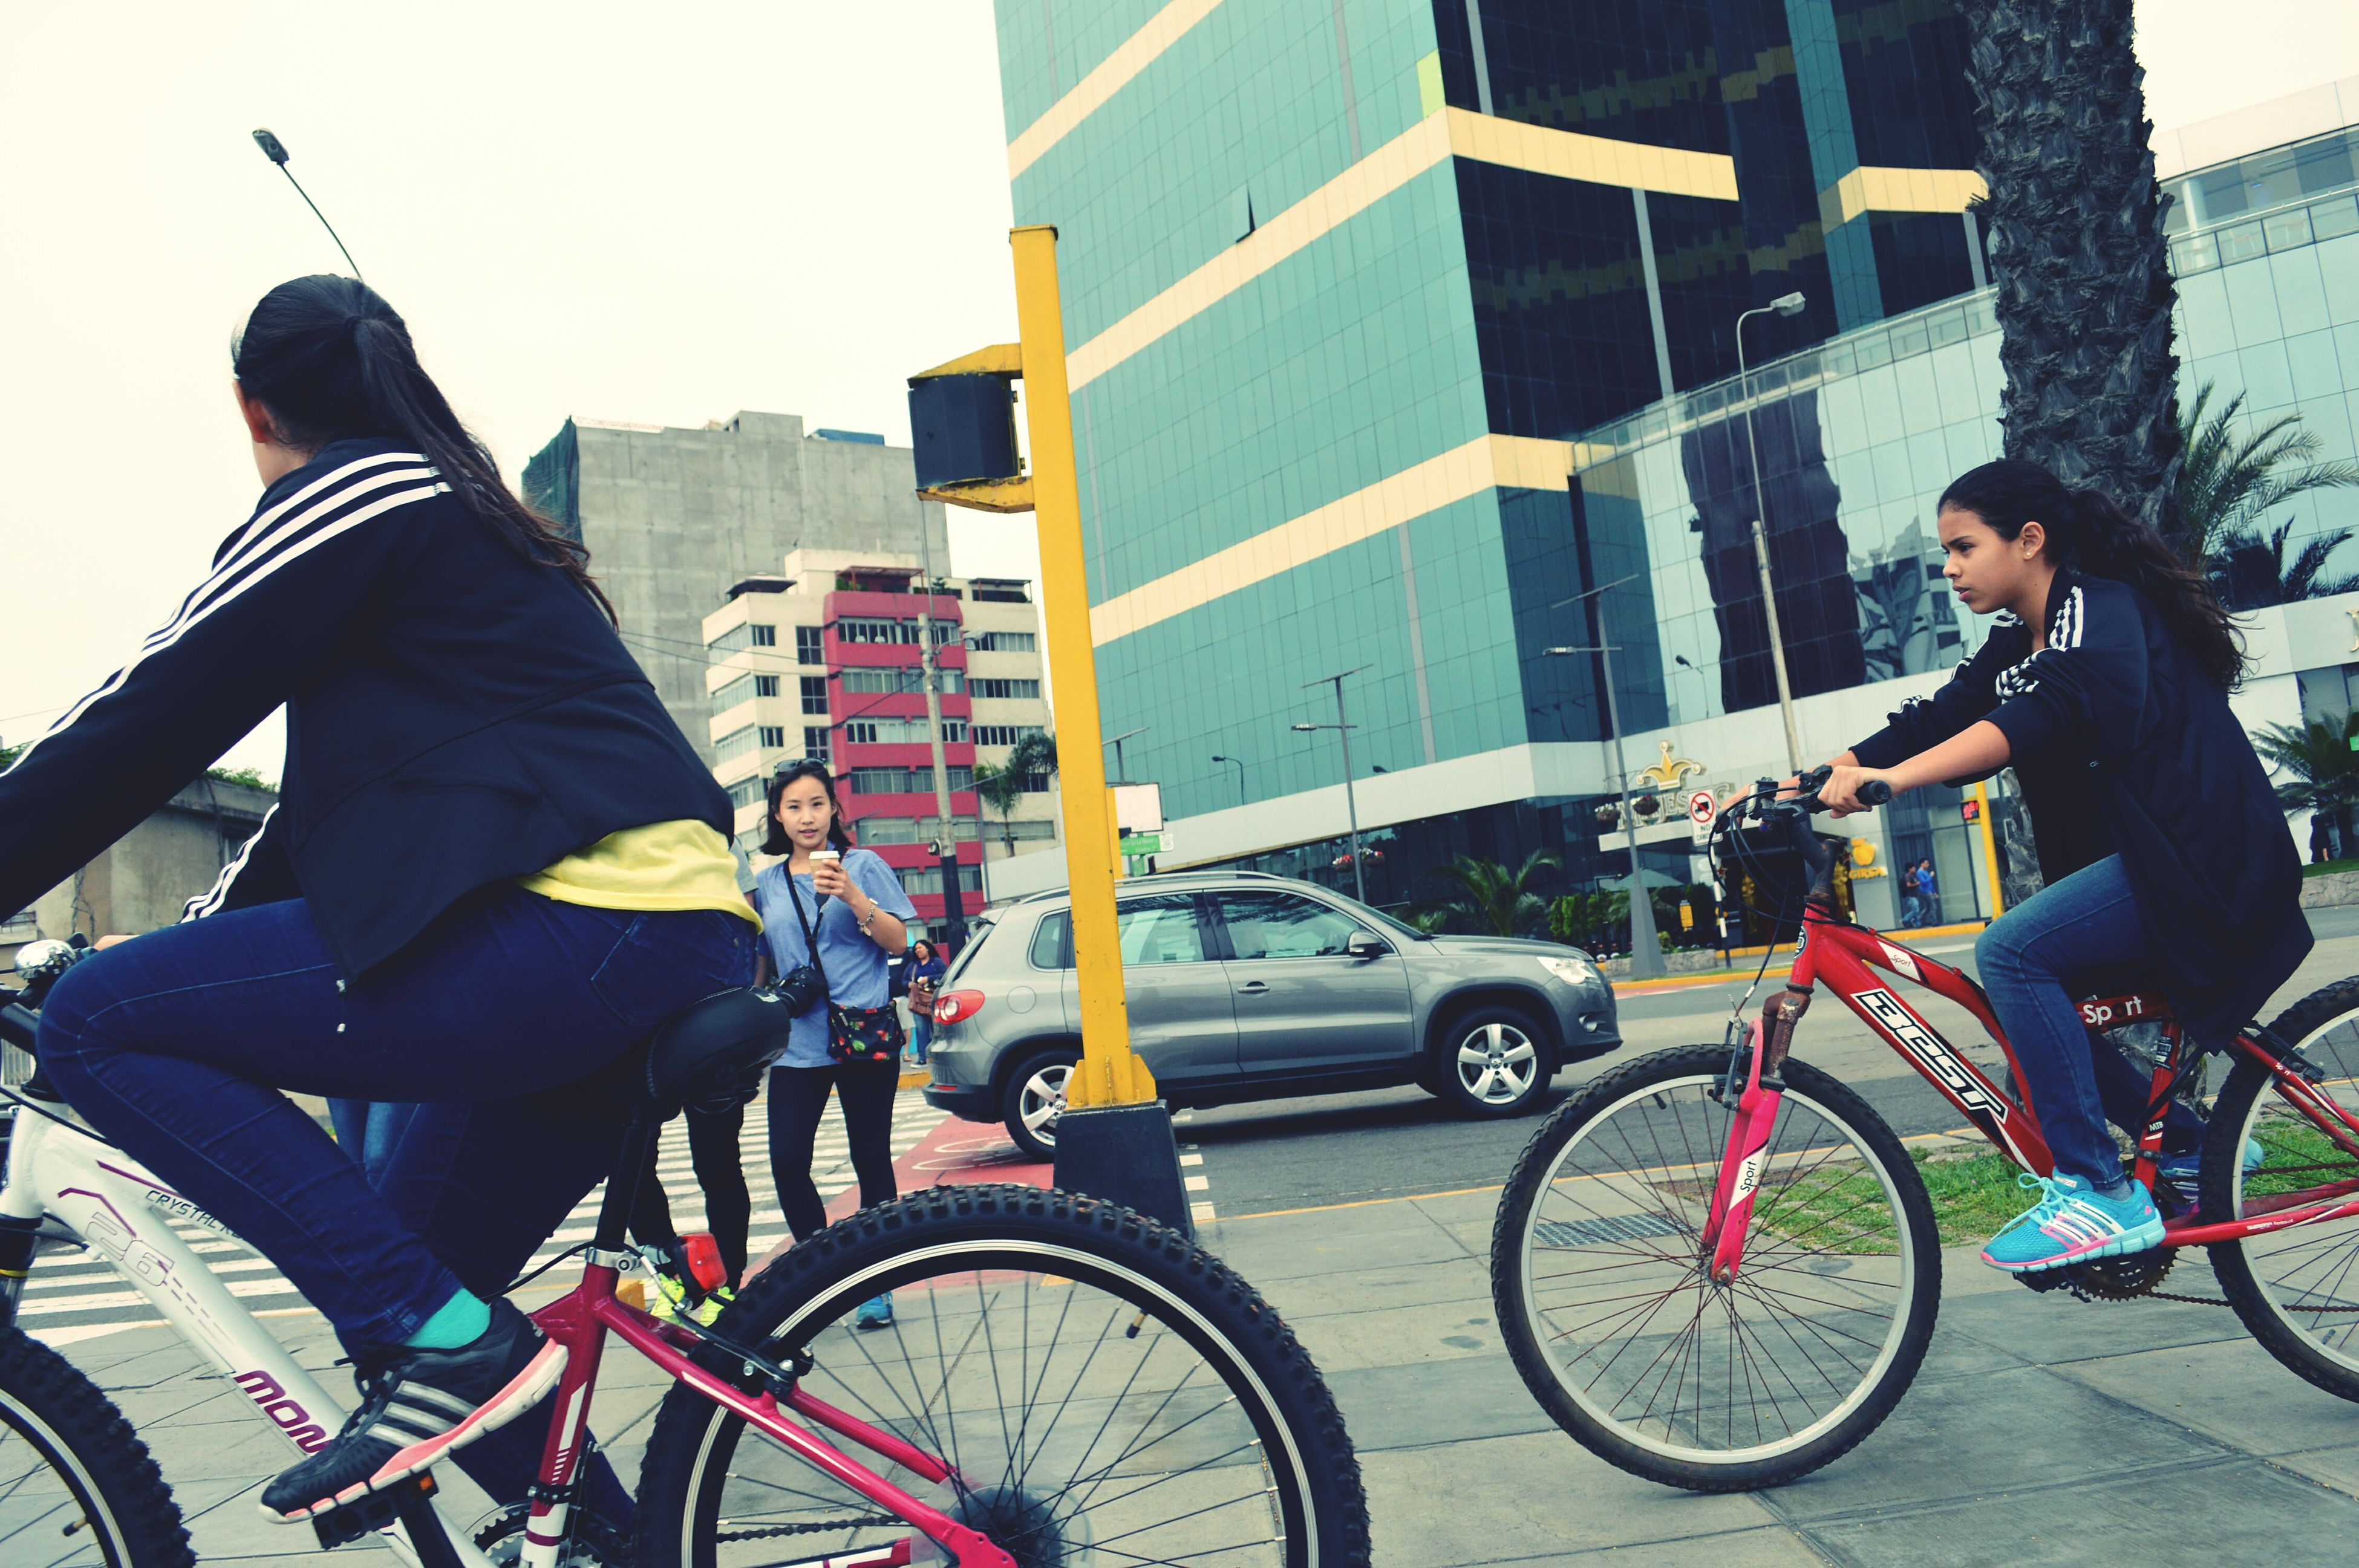 bicycle, lifestyles, transportation, land vehicle, mode of transport, architecture, building exterior, leisure activity, built structure, casual clothing, men, city, riding, street, city life, standing, full length, day